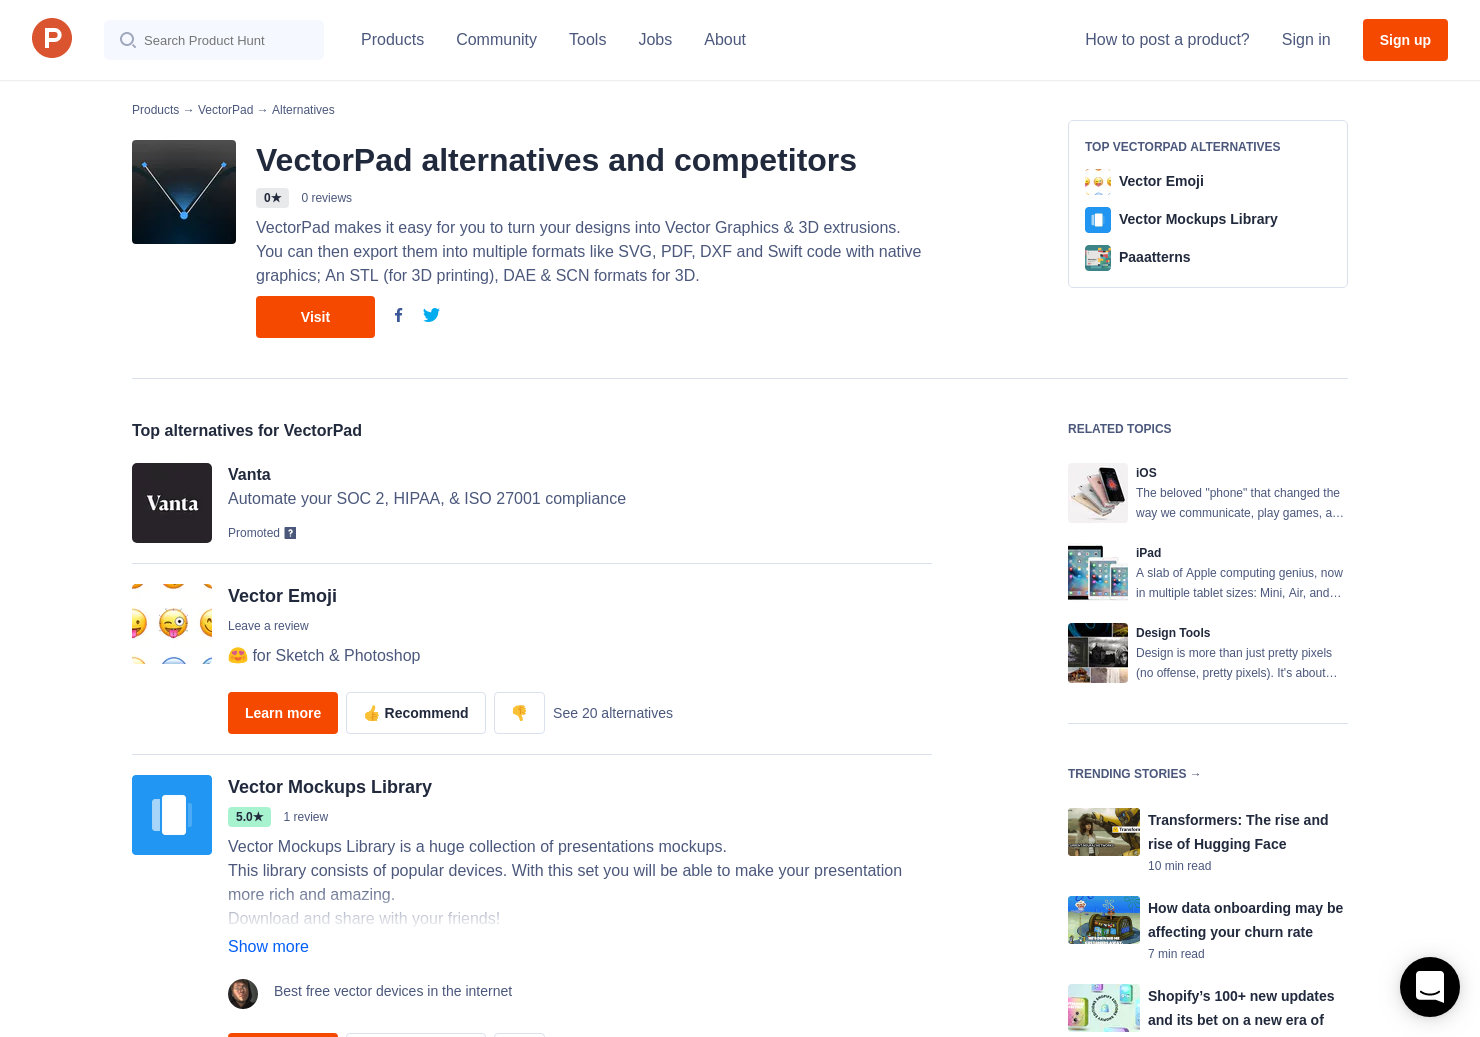 6 Alternatives to VectorPad for iPhone, iPad   Product Hunt